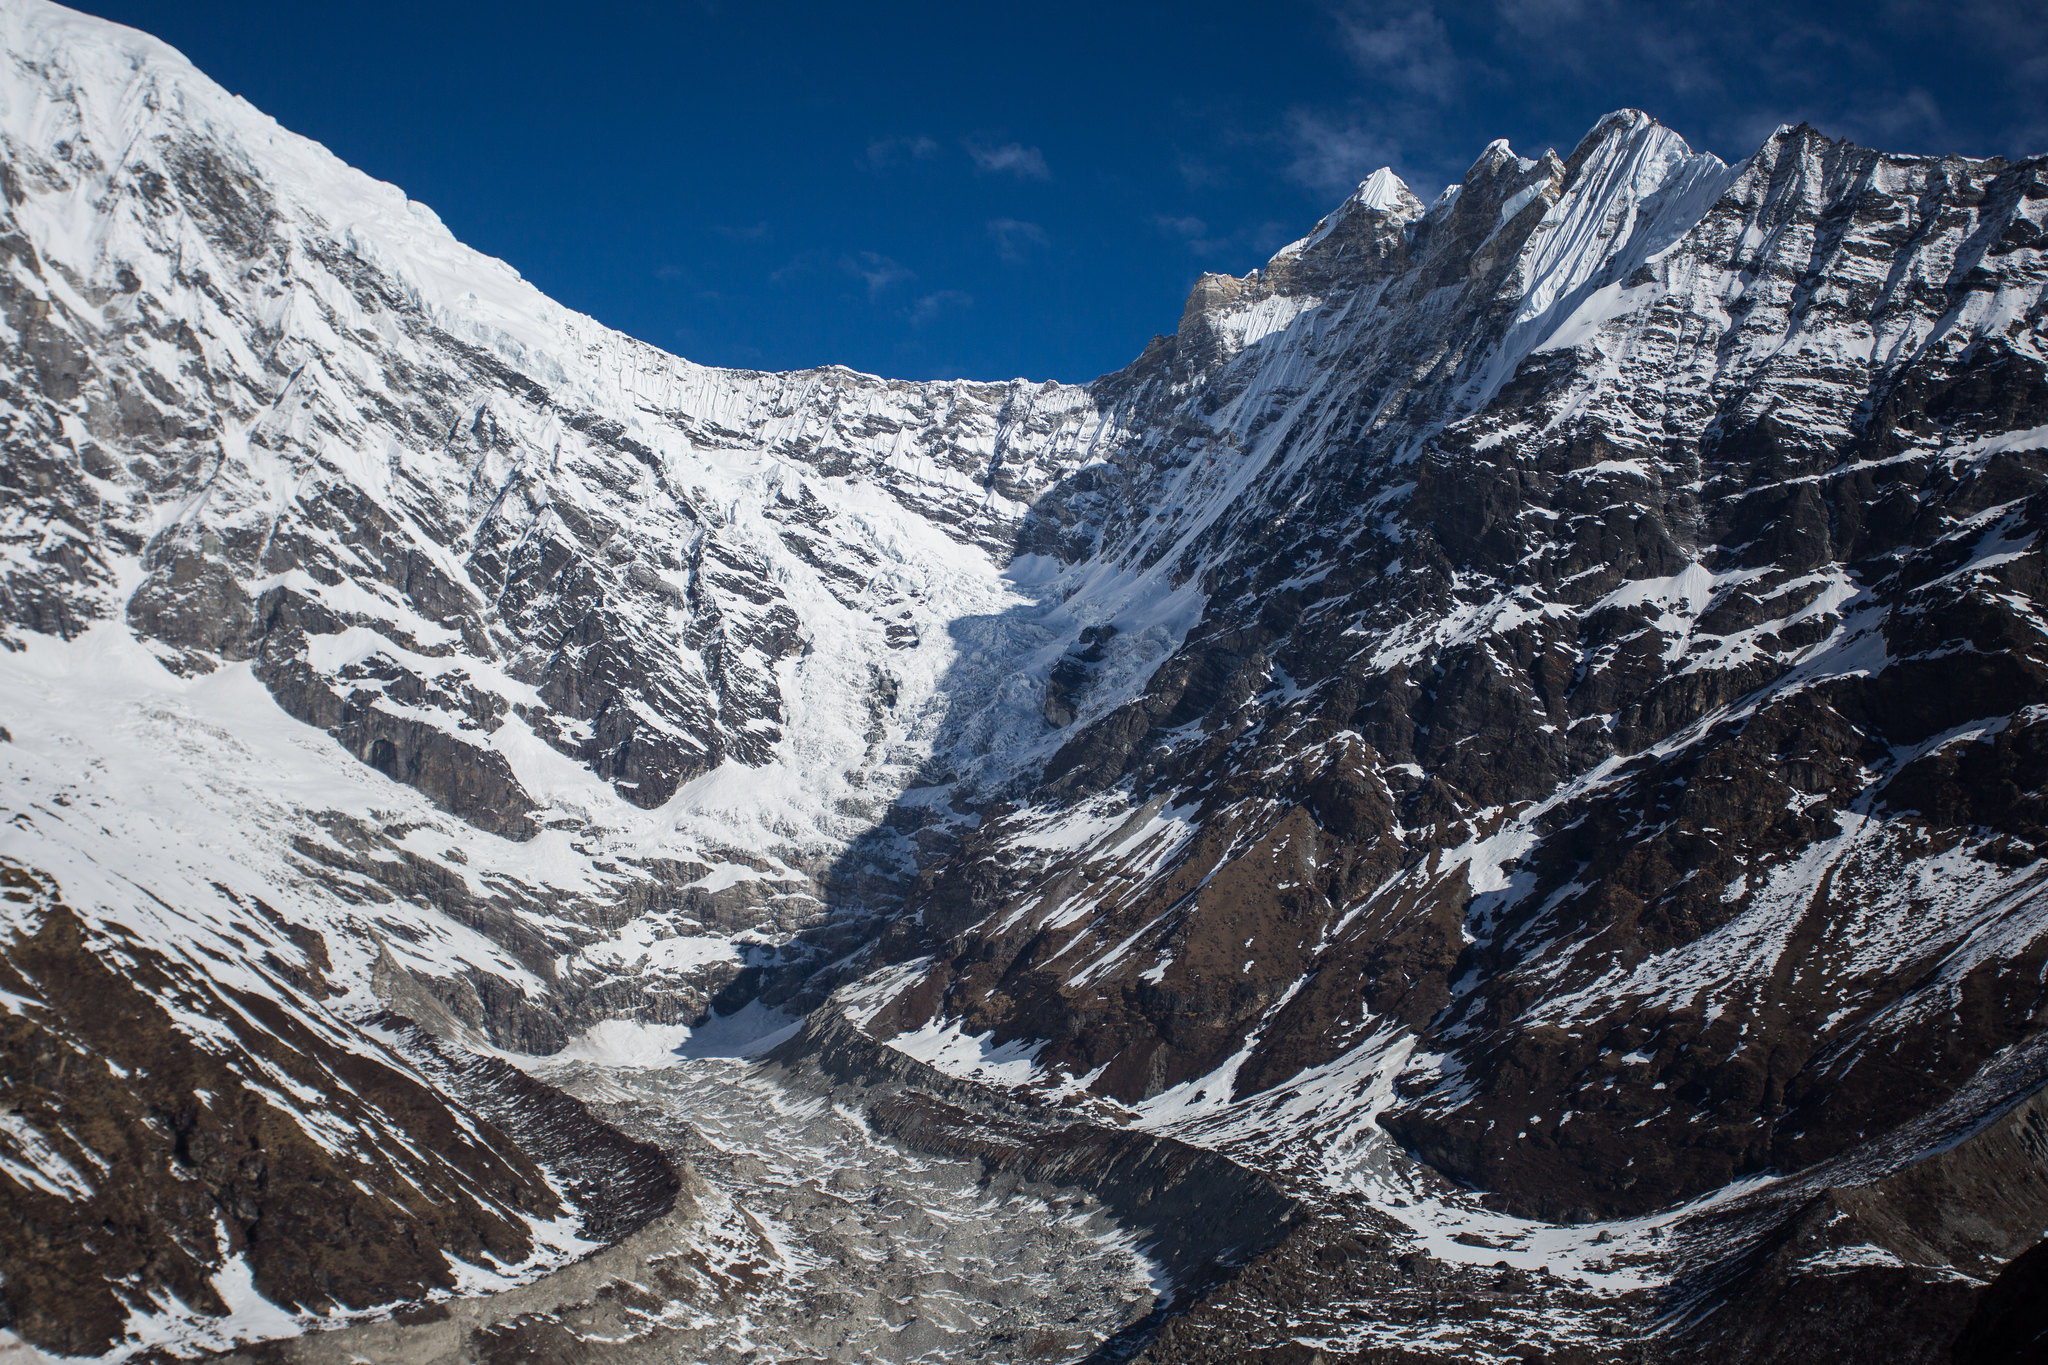 The Langtang National Park. Photo: Jonny/Flickr